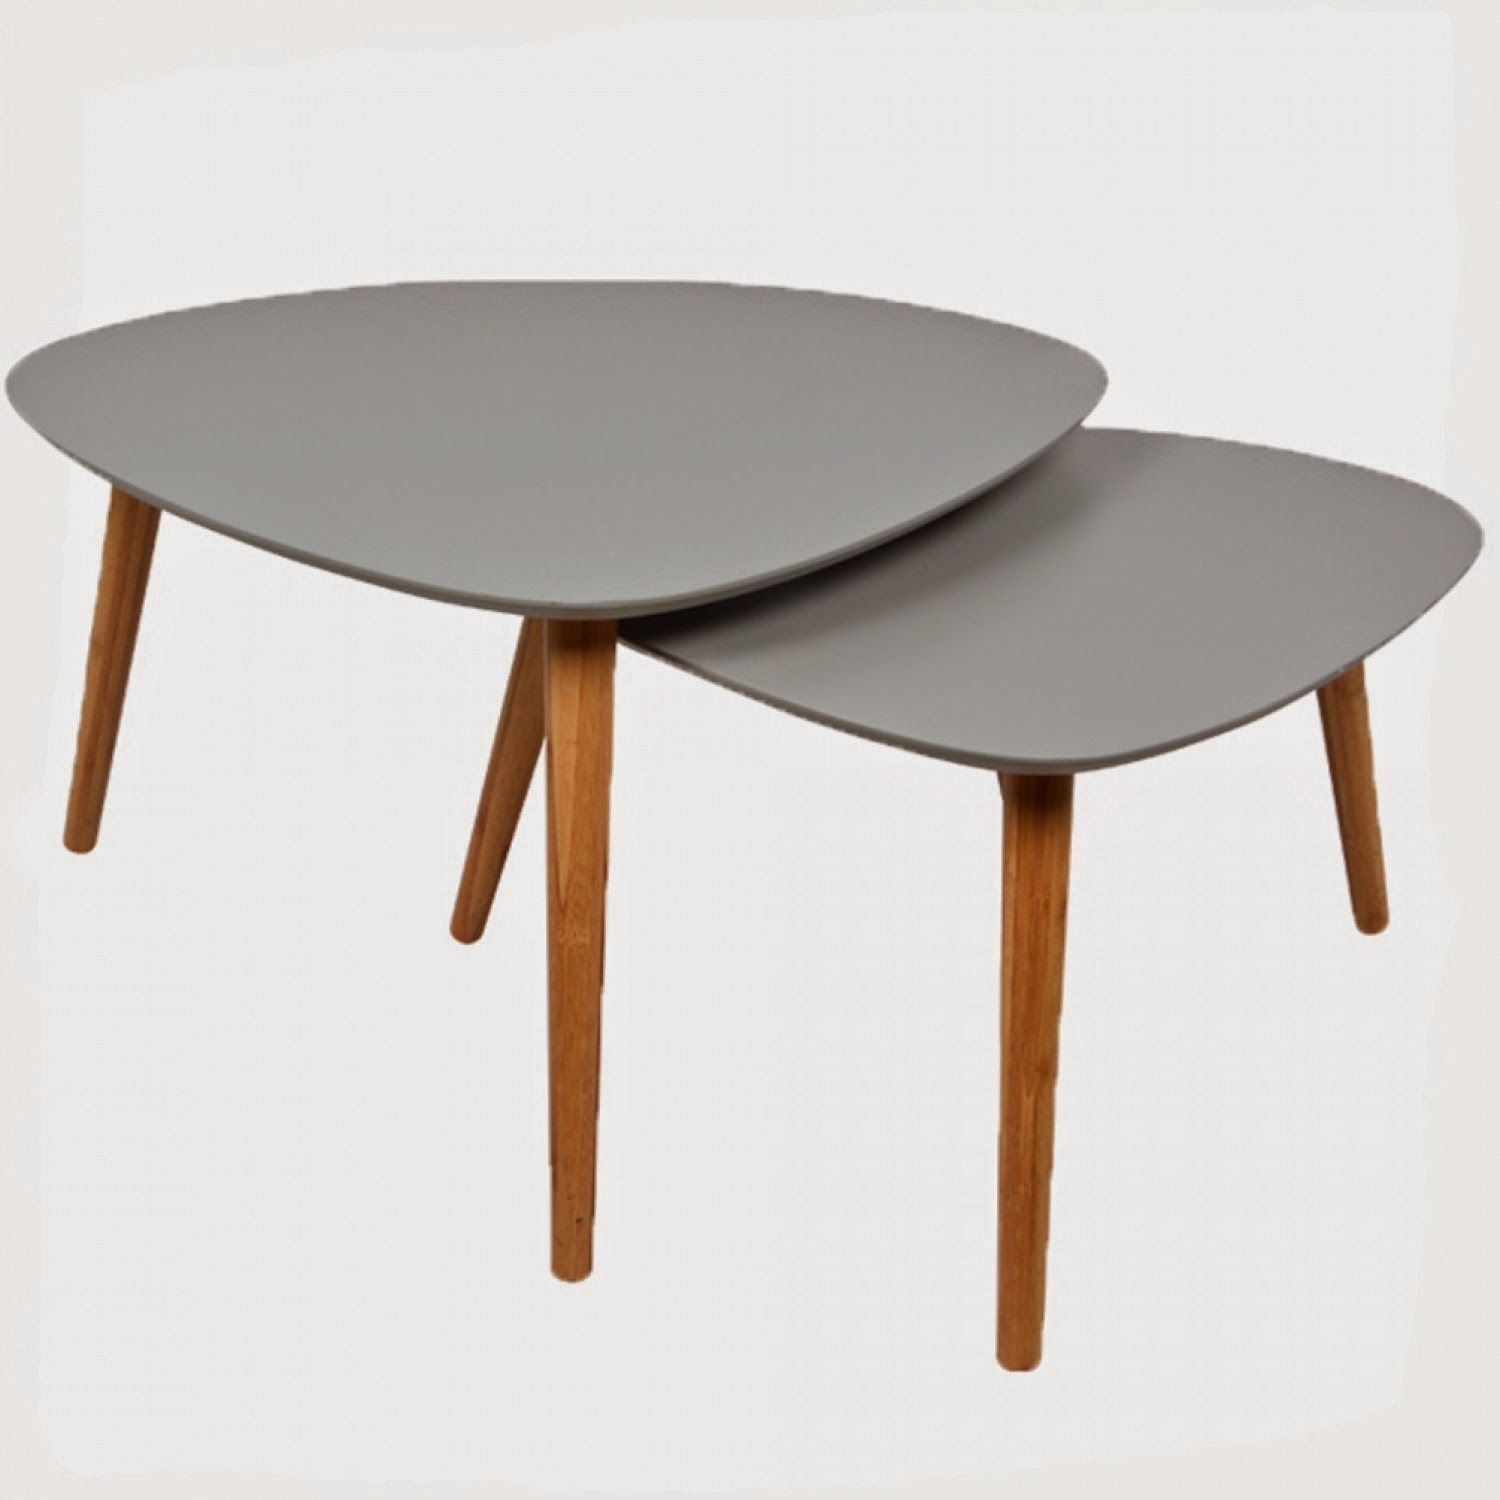 Les tables basses gigognes caract rielle - Table basse scandinave gigogne ...